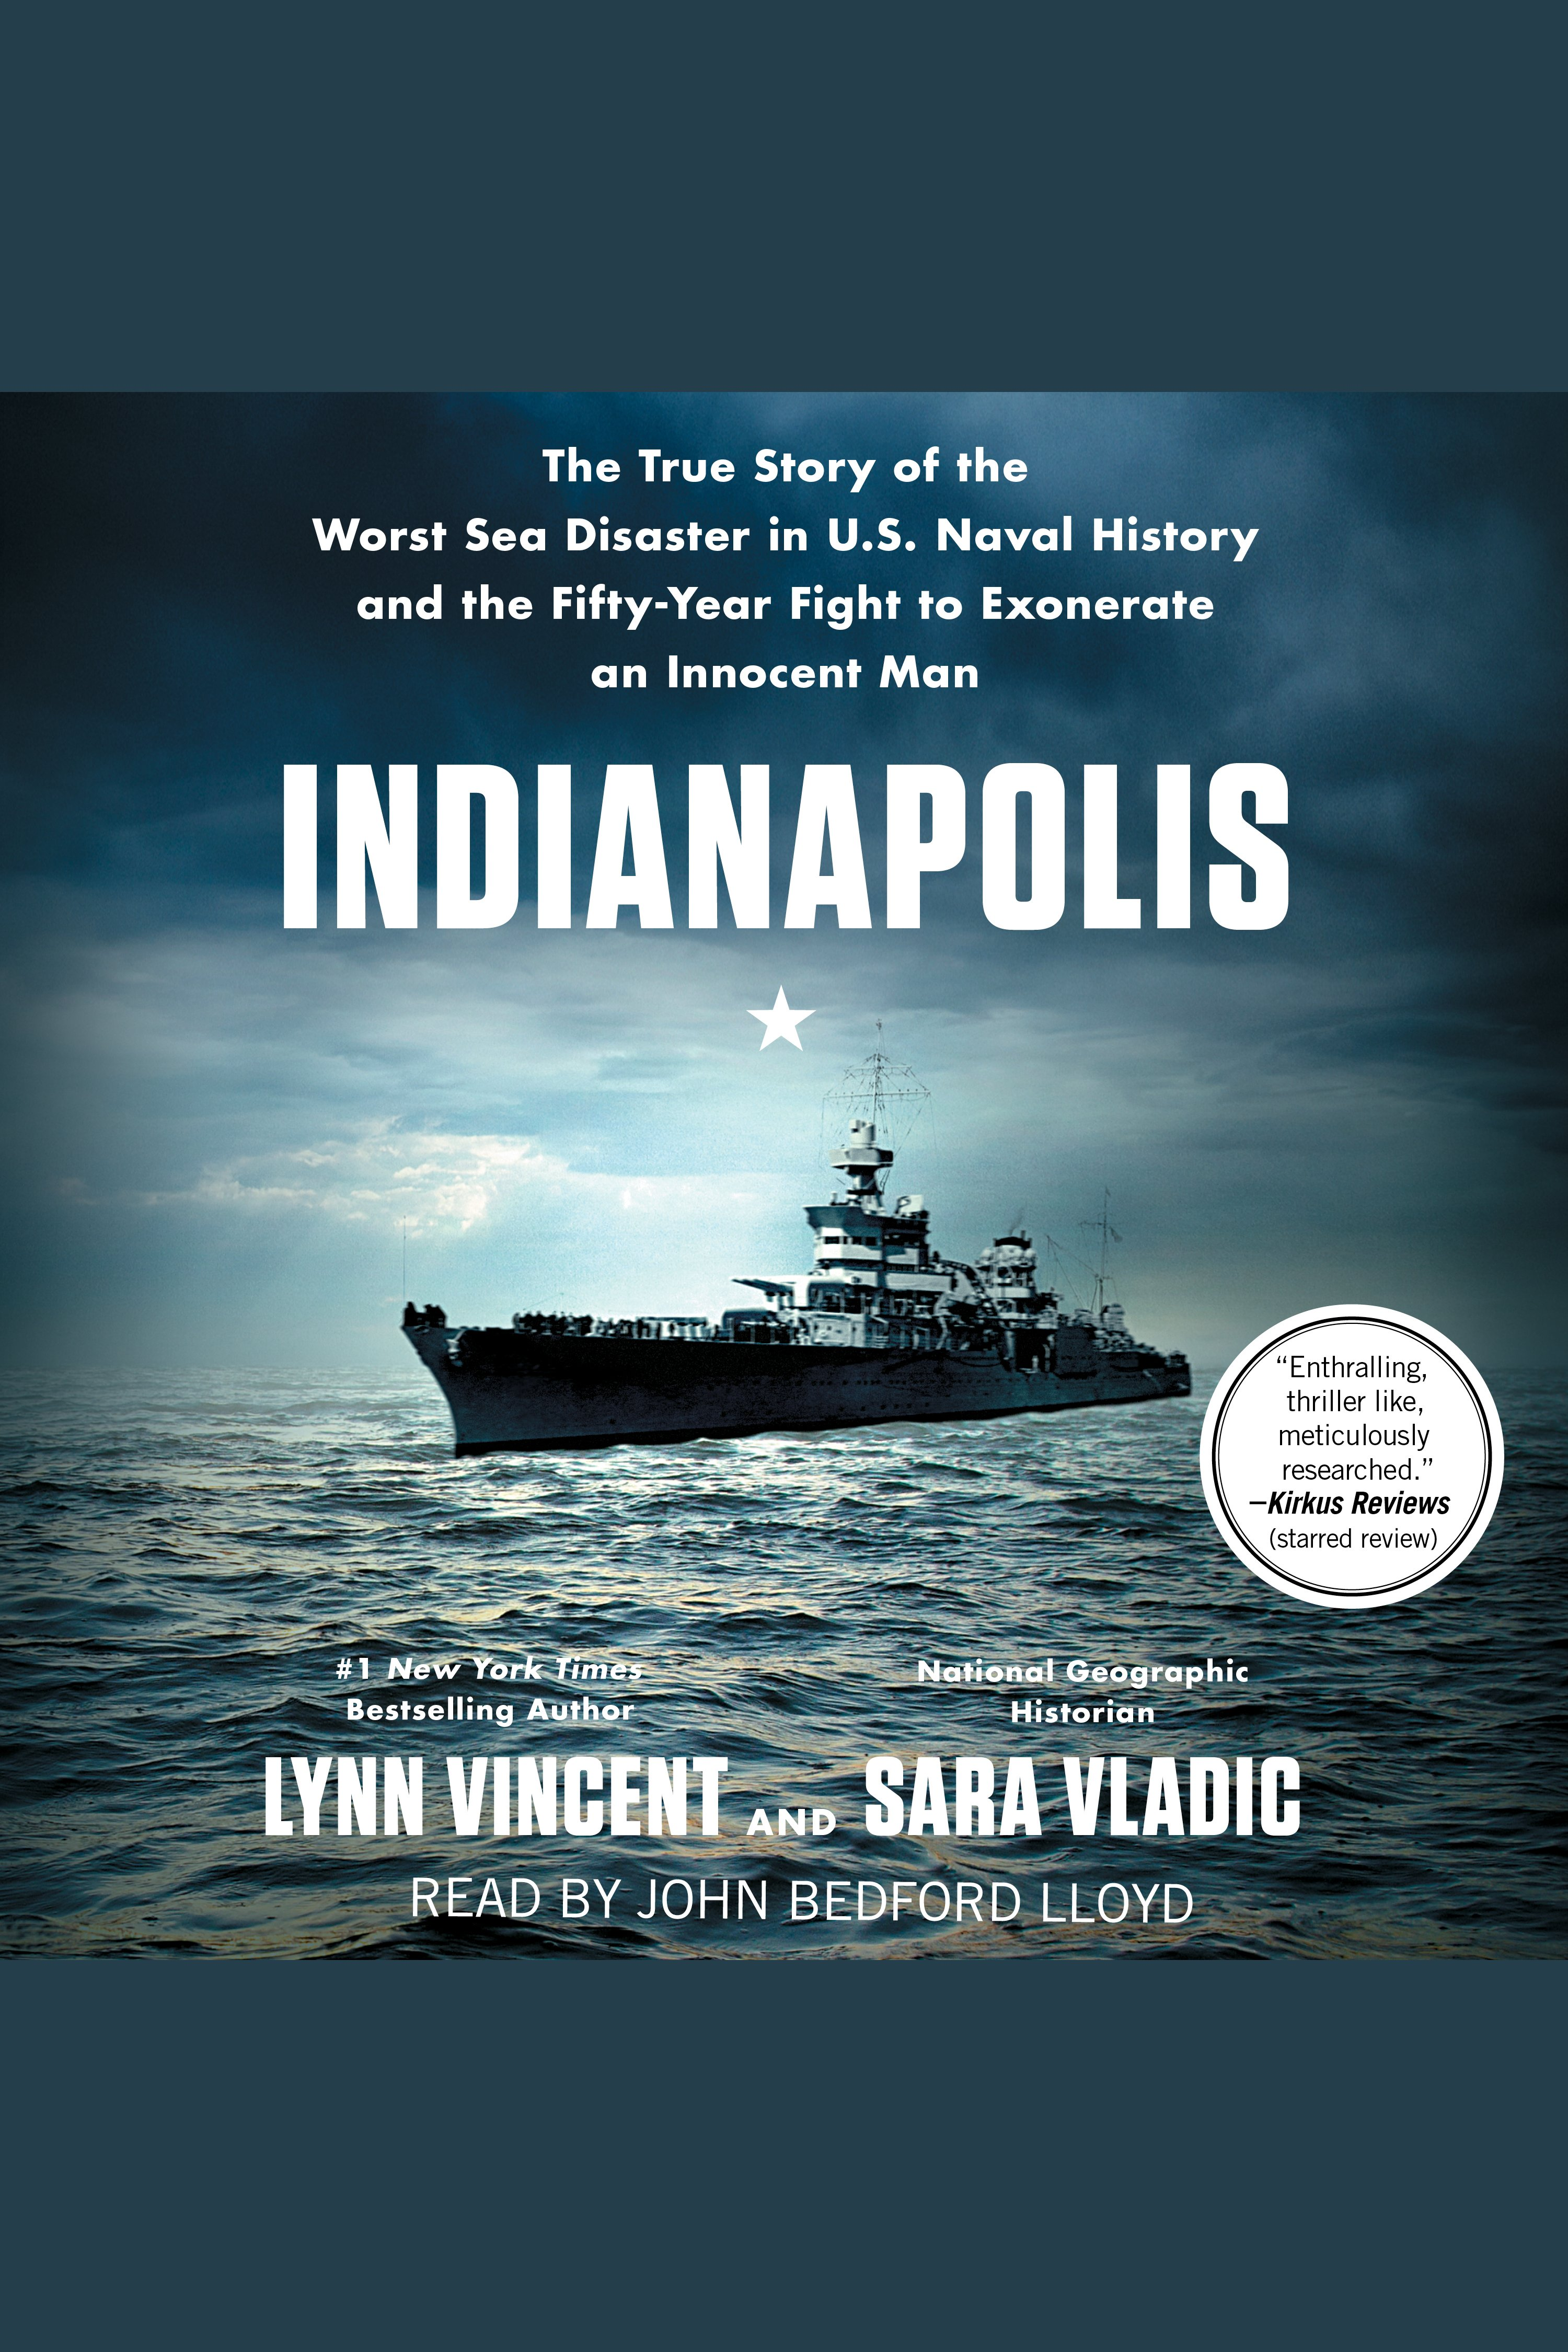 Indianapolis [electronic resource] : The True Story of the Worst Sea Disaster in U.S. Naval History and the Fifty-Year Fight to Exonerate an Innocent Man